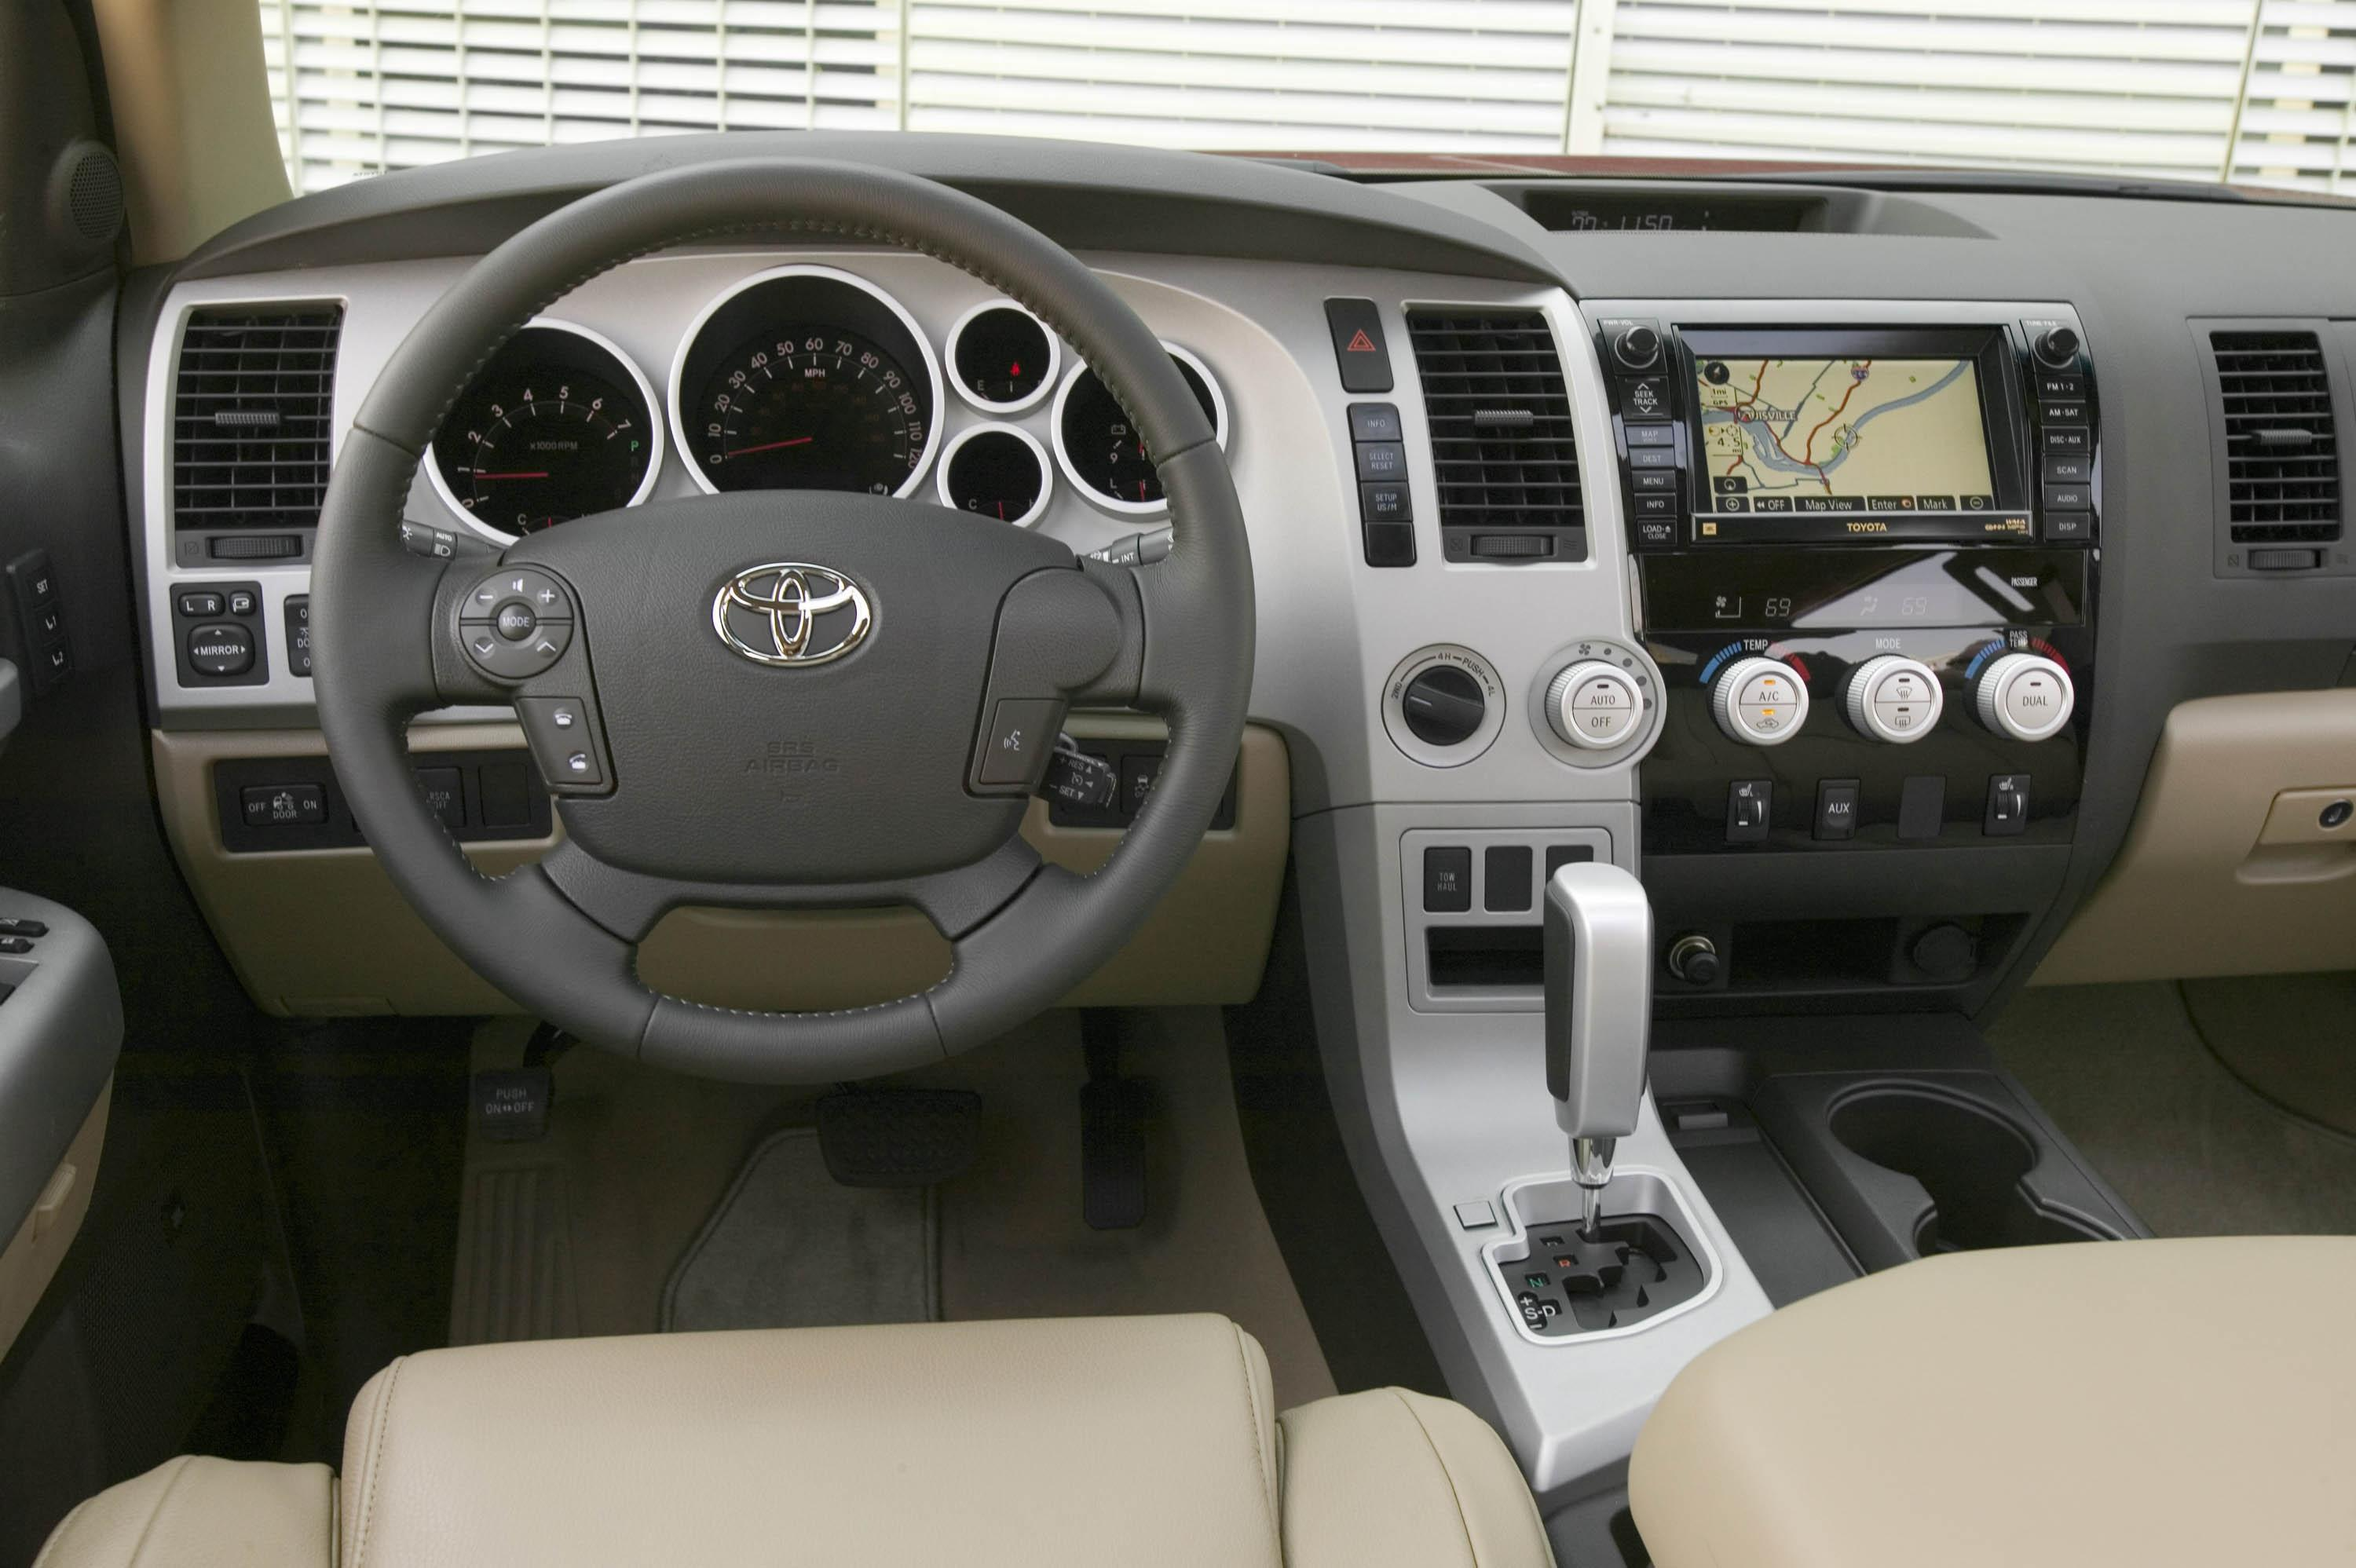 2008 toyota tundra motor trend truck of the year news for Motor trend truck of the year